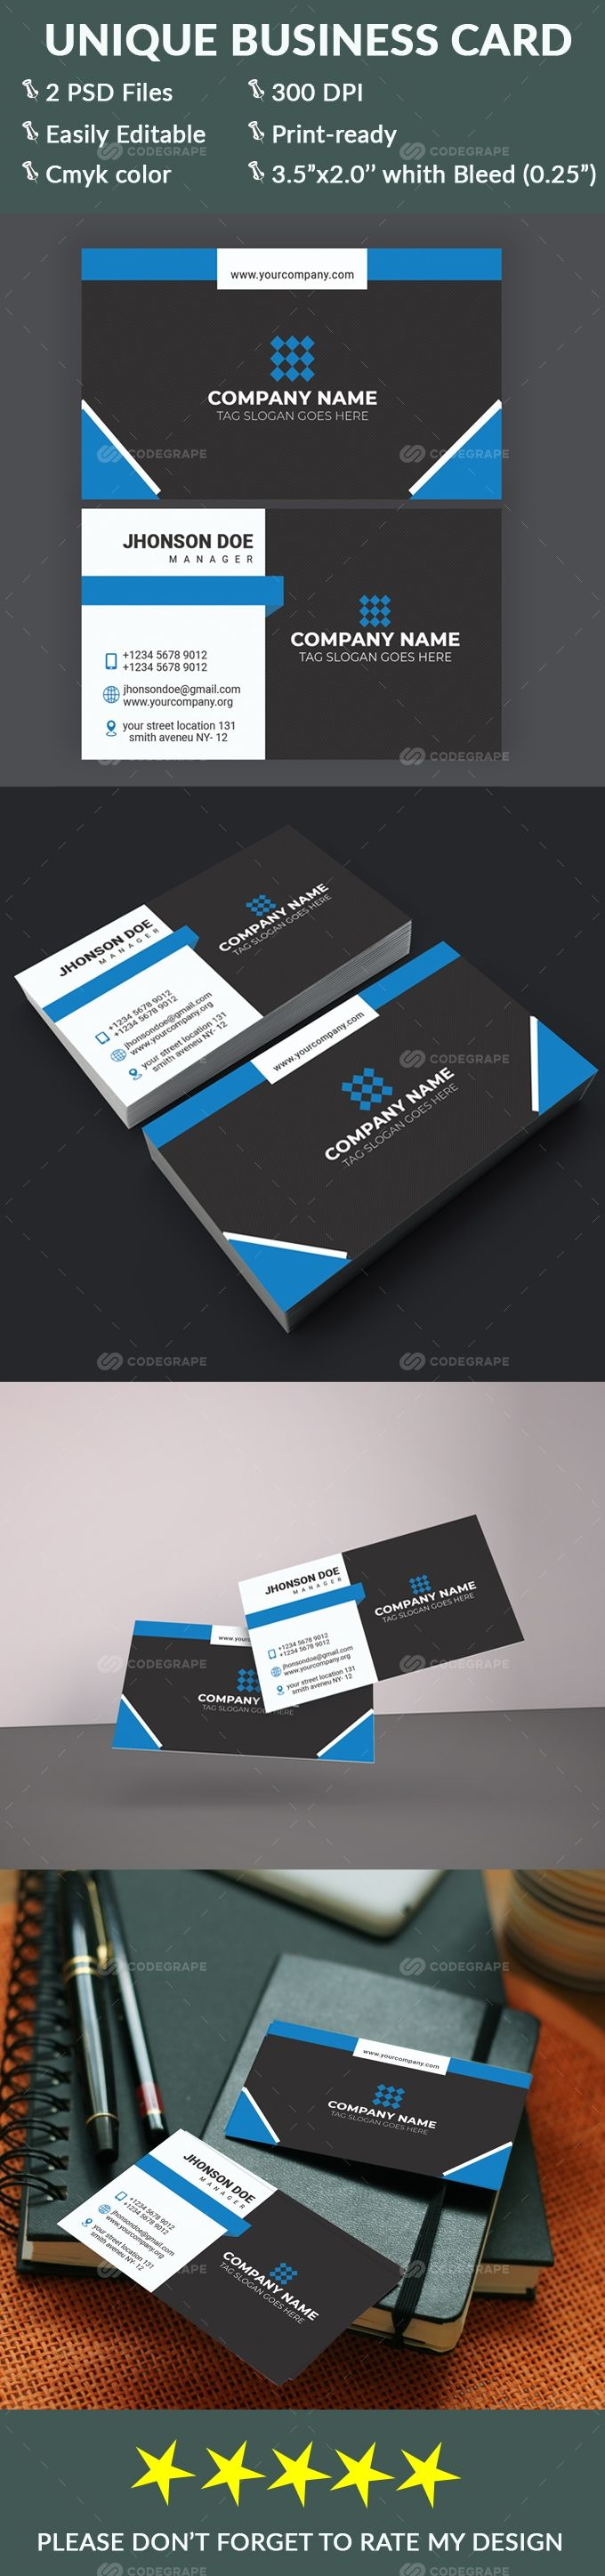 Unique Business Card Unique Business Cards Cards Business Cards